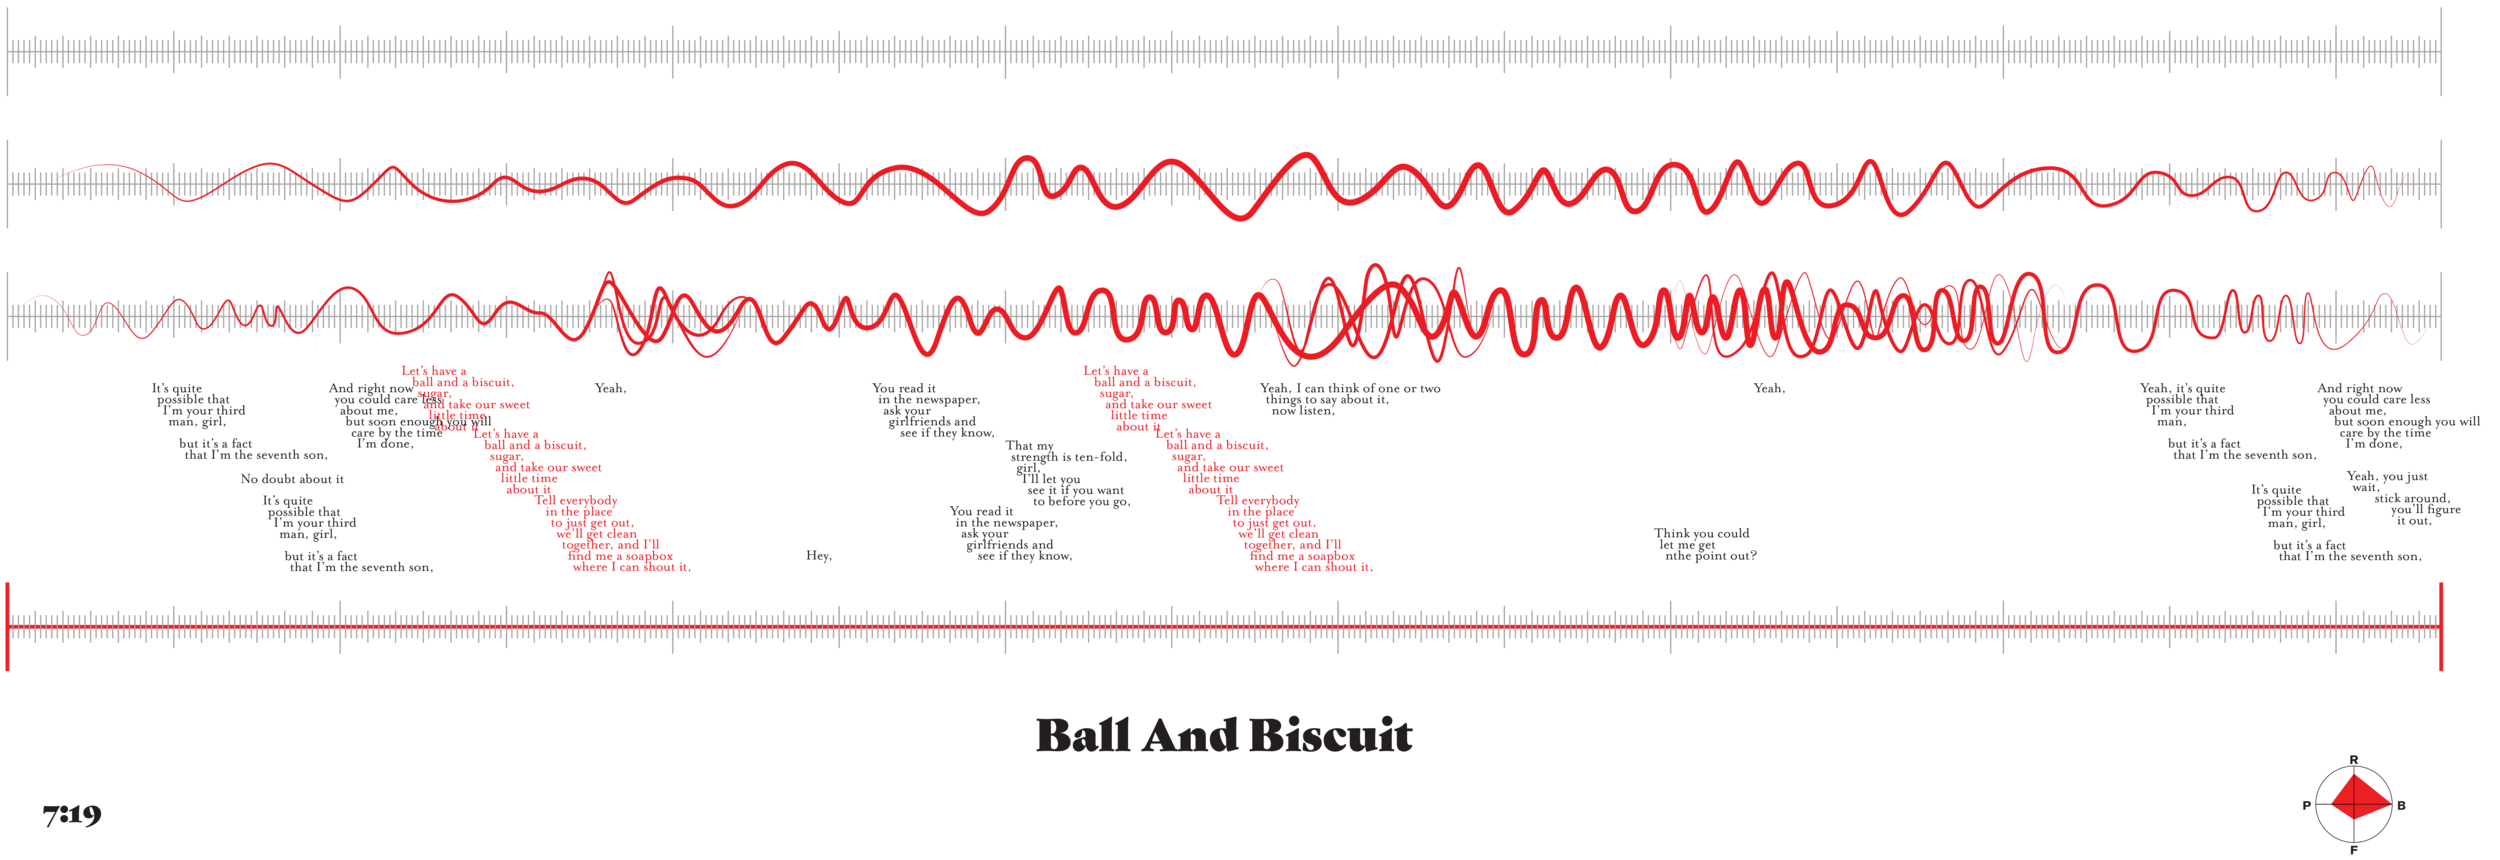 08 - Ball and Biscuit.png